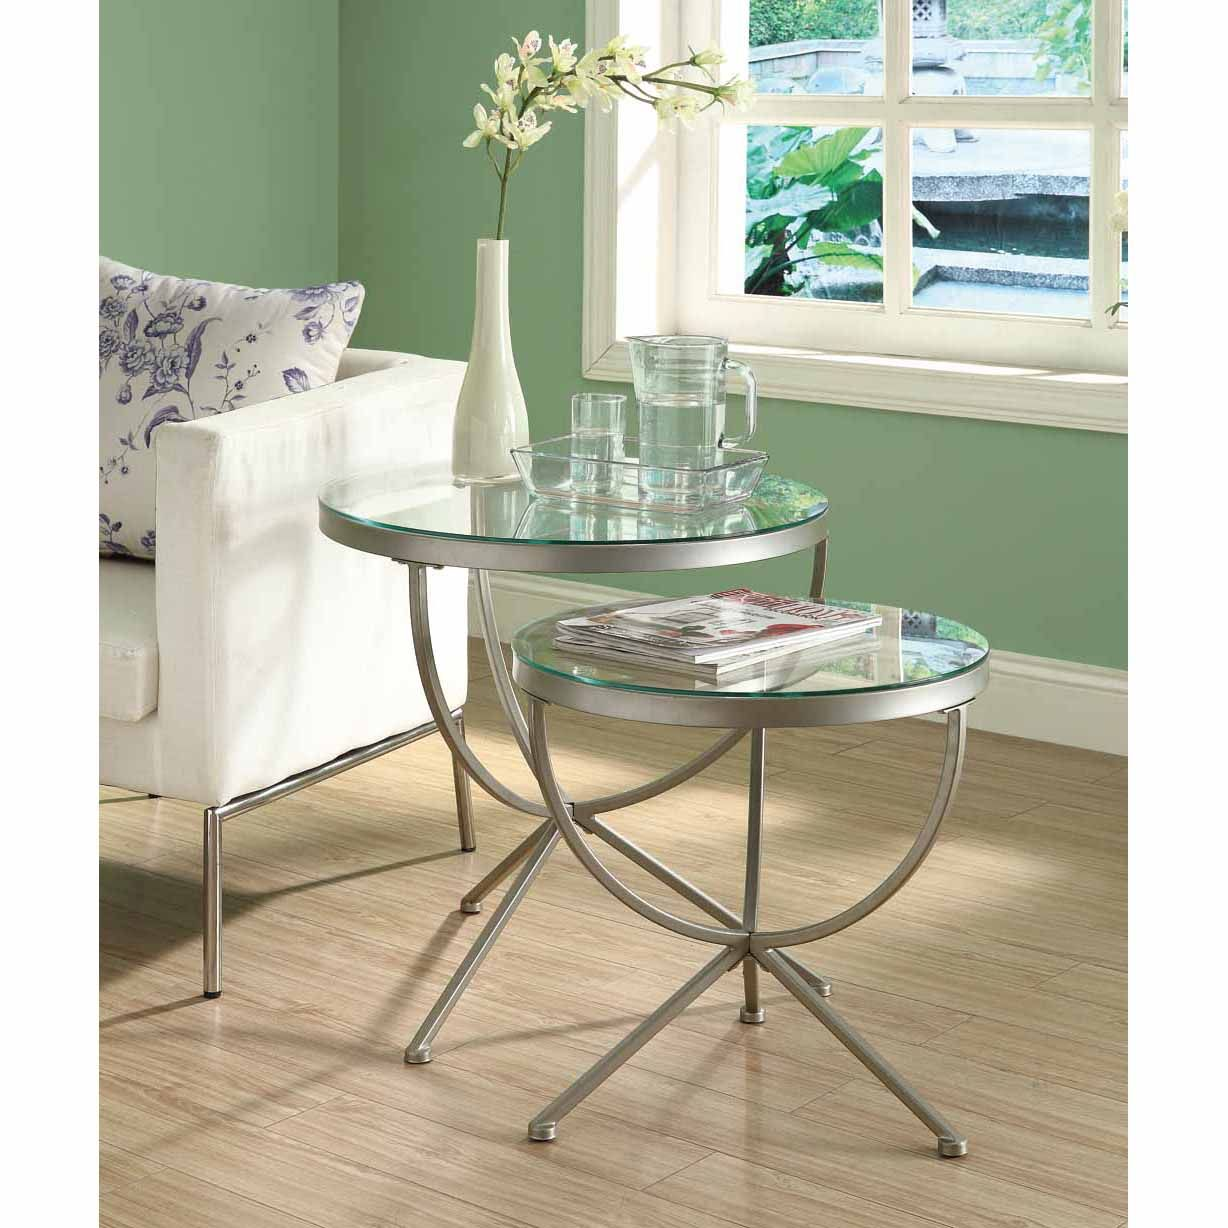 Monarch Round Satin Silver Nesting Tables With Tempered Glass   2 Piece Set  Modern Side Tables And Accent Tables